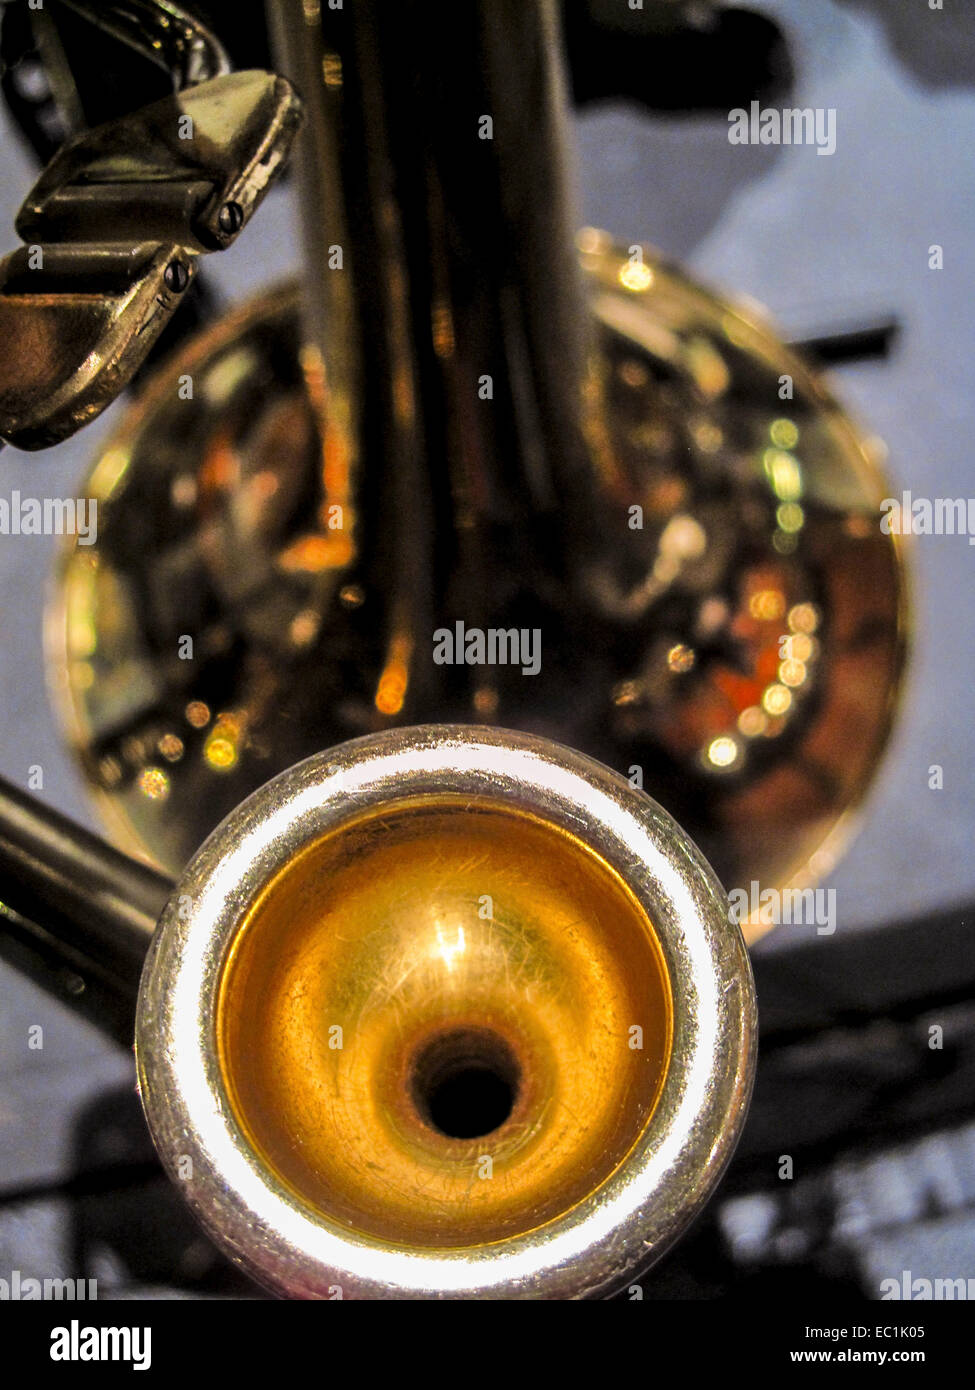 Mouthpiece, tenor trombone in Bb, with thumb trigger controlling rotary valve. This trigger drops the tuning down - Stock Image